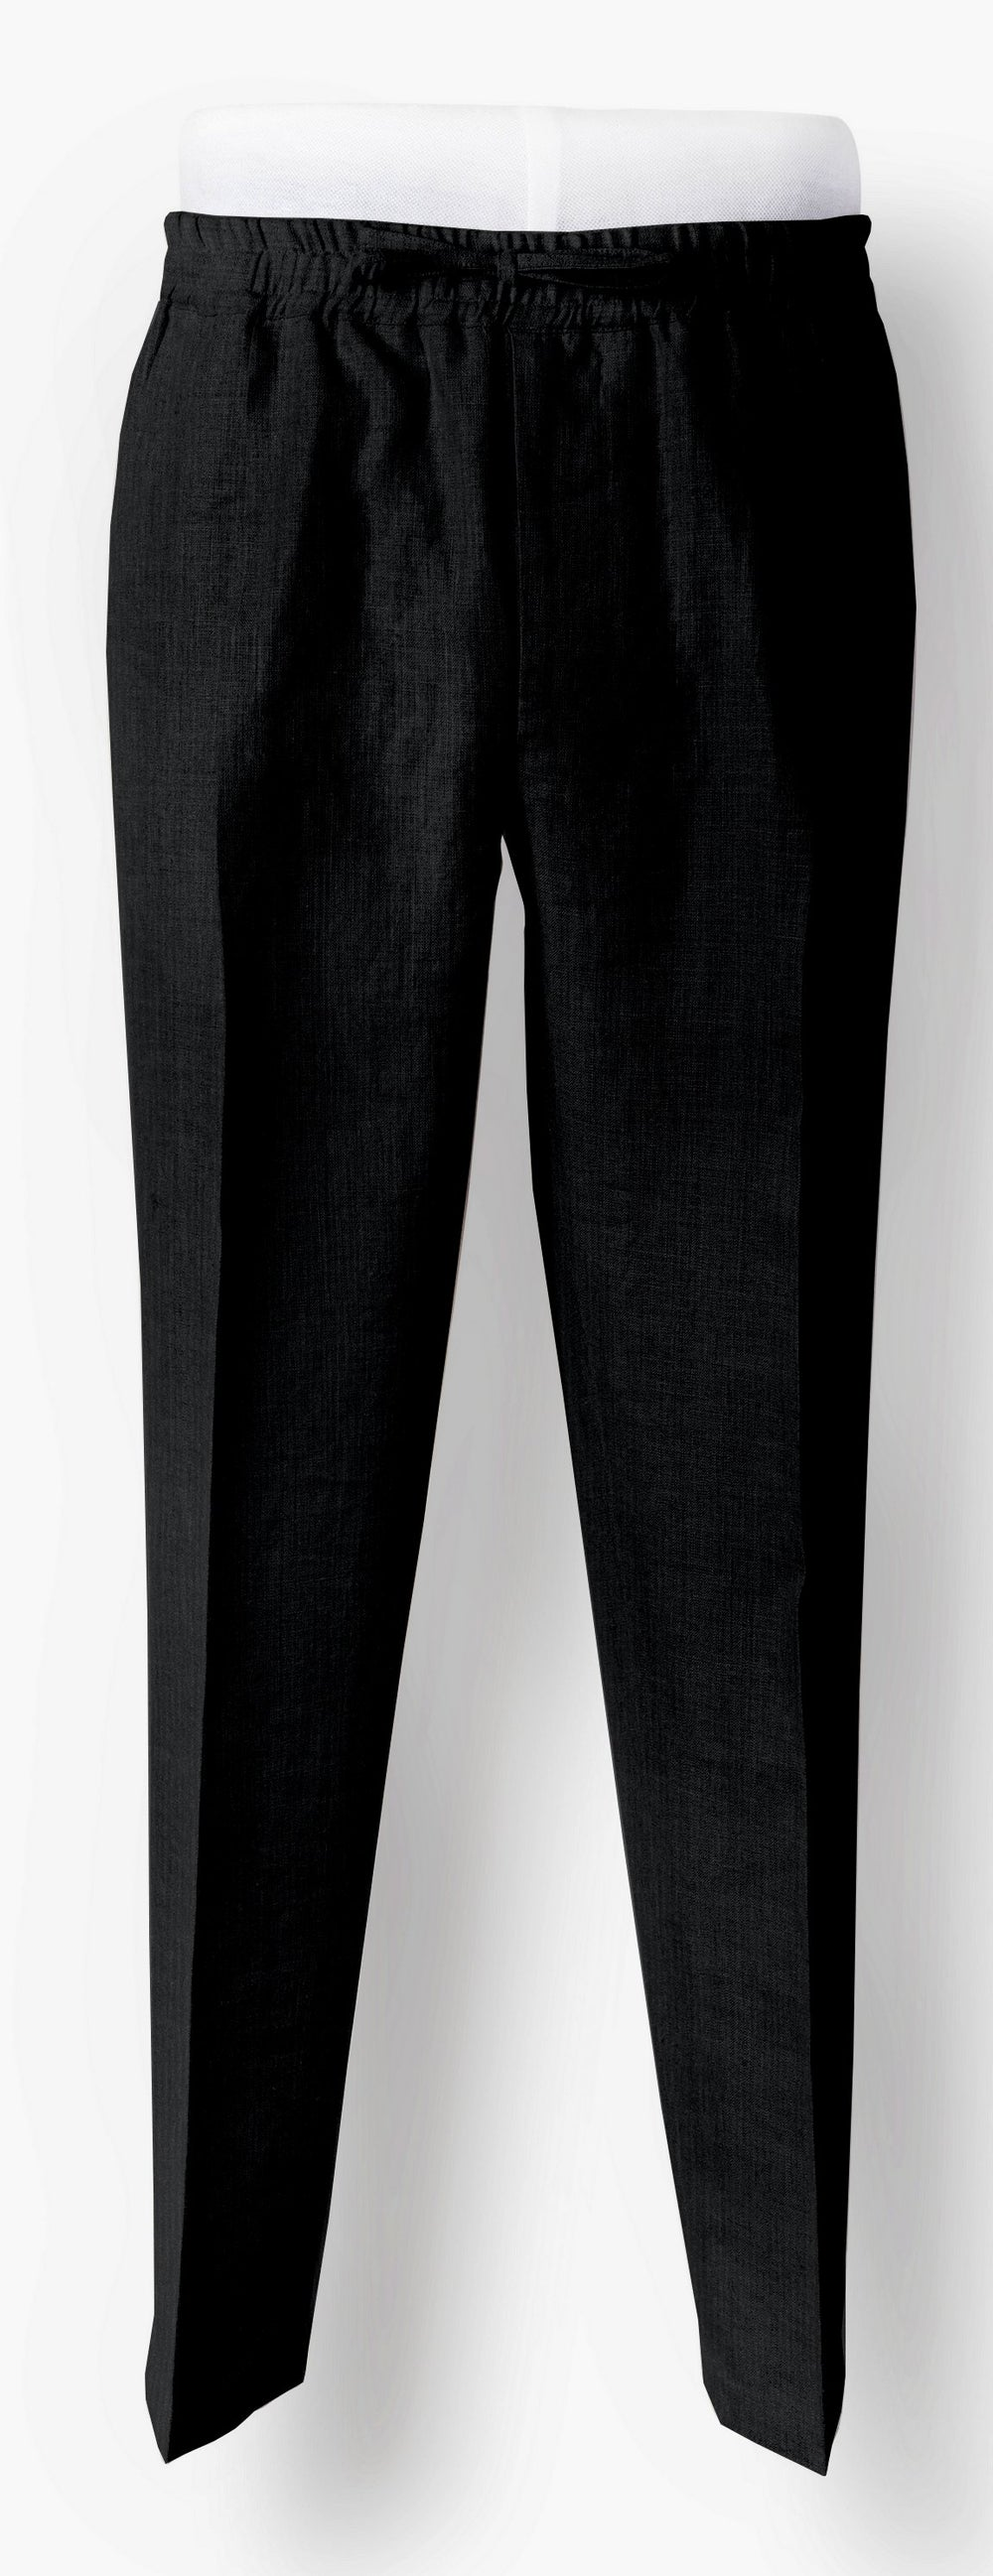 Black Corduroy 18 Wale Drawstring Pants